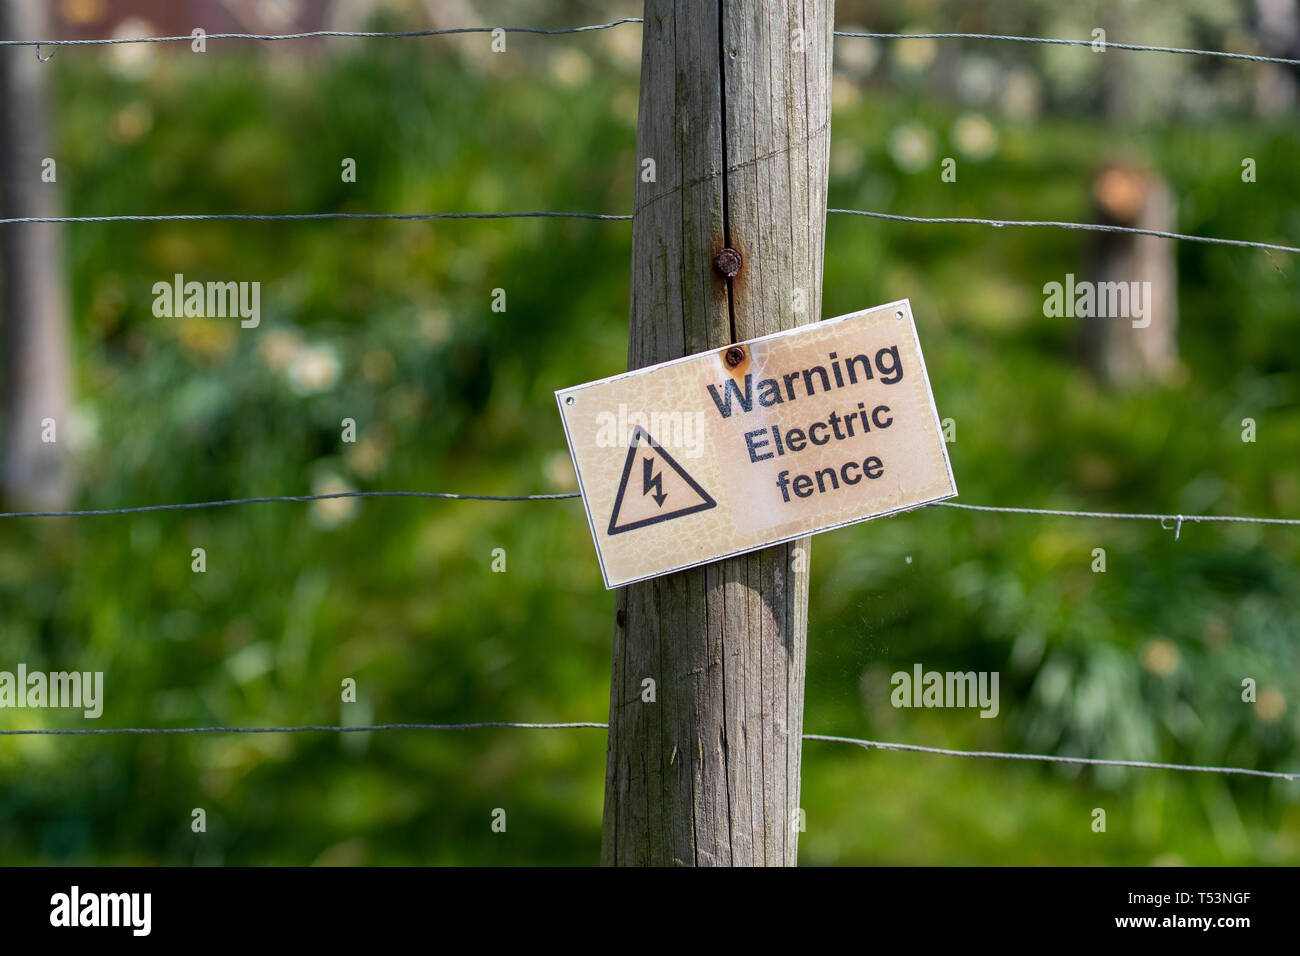 A crooked sign warning people that an electric fence is present. The sign is attached to a wire fence with a green background. Stock Photo